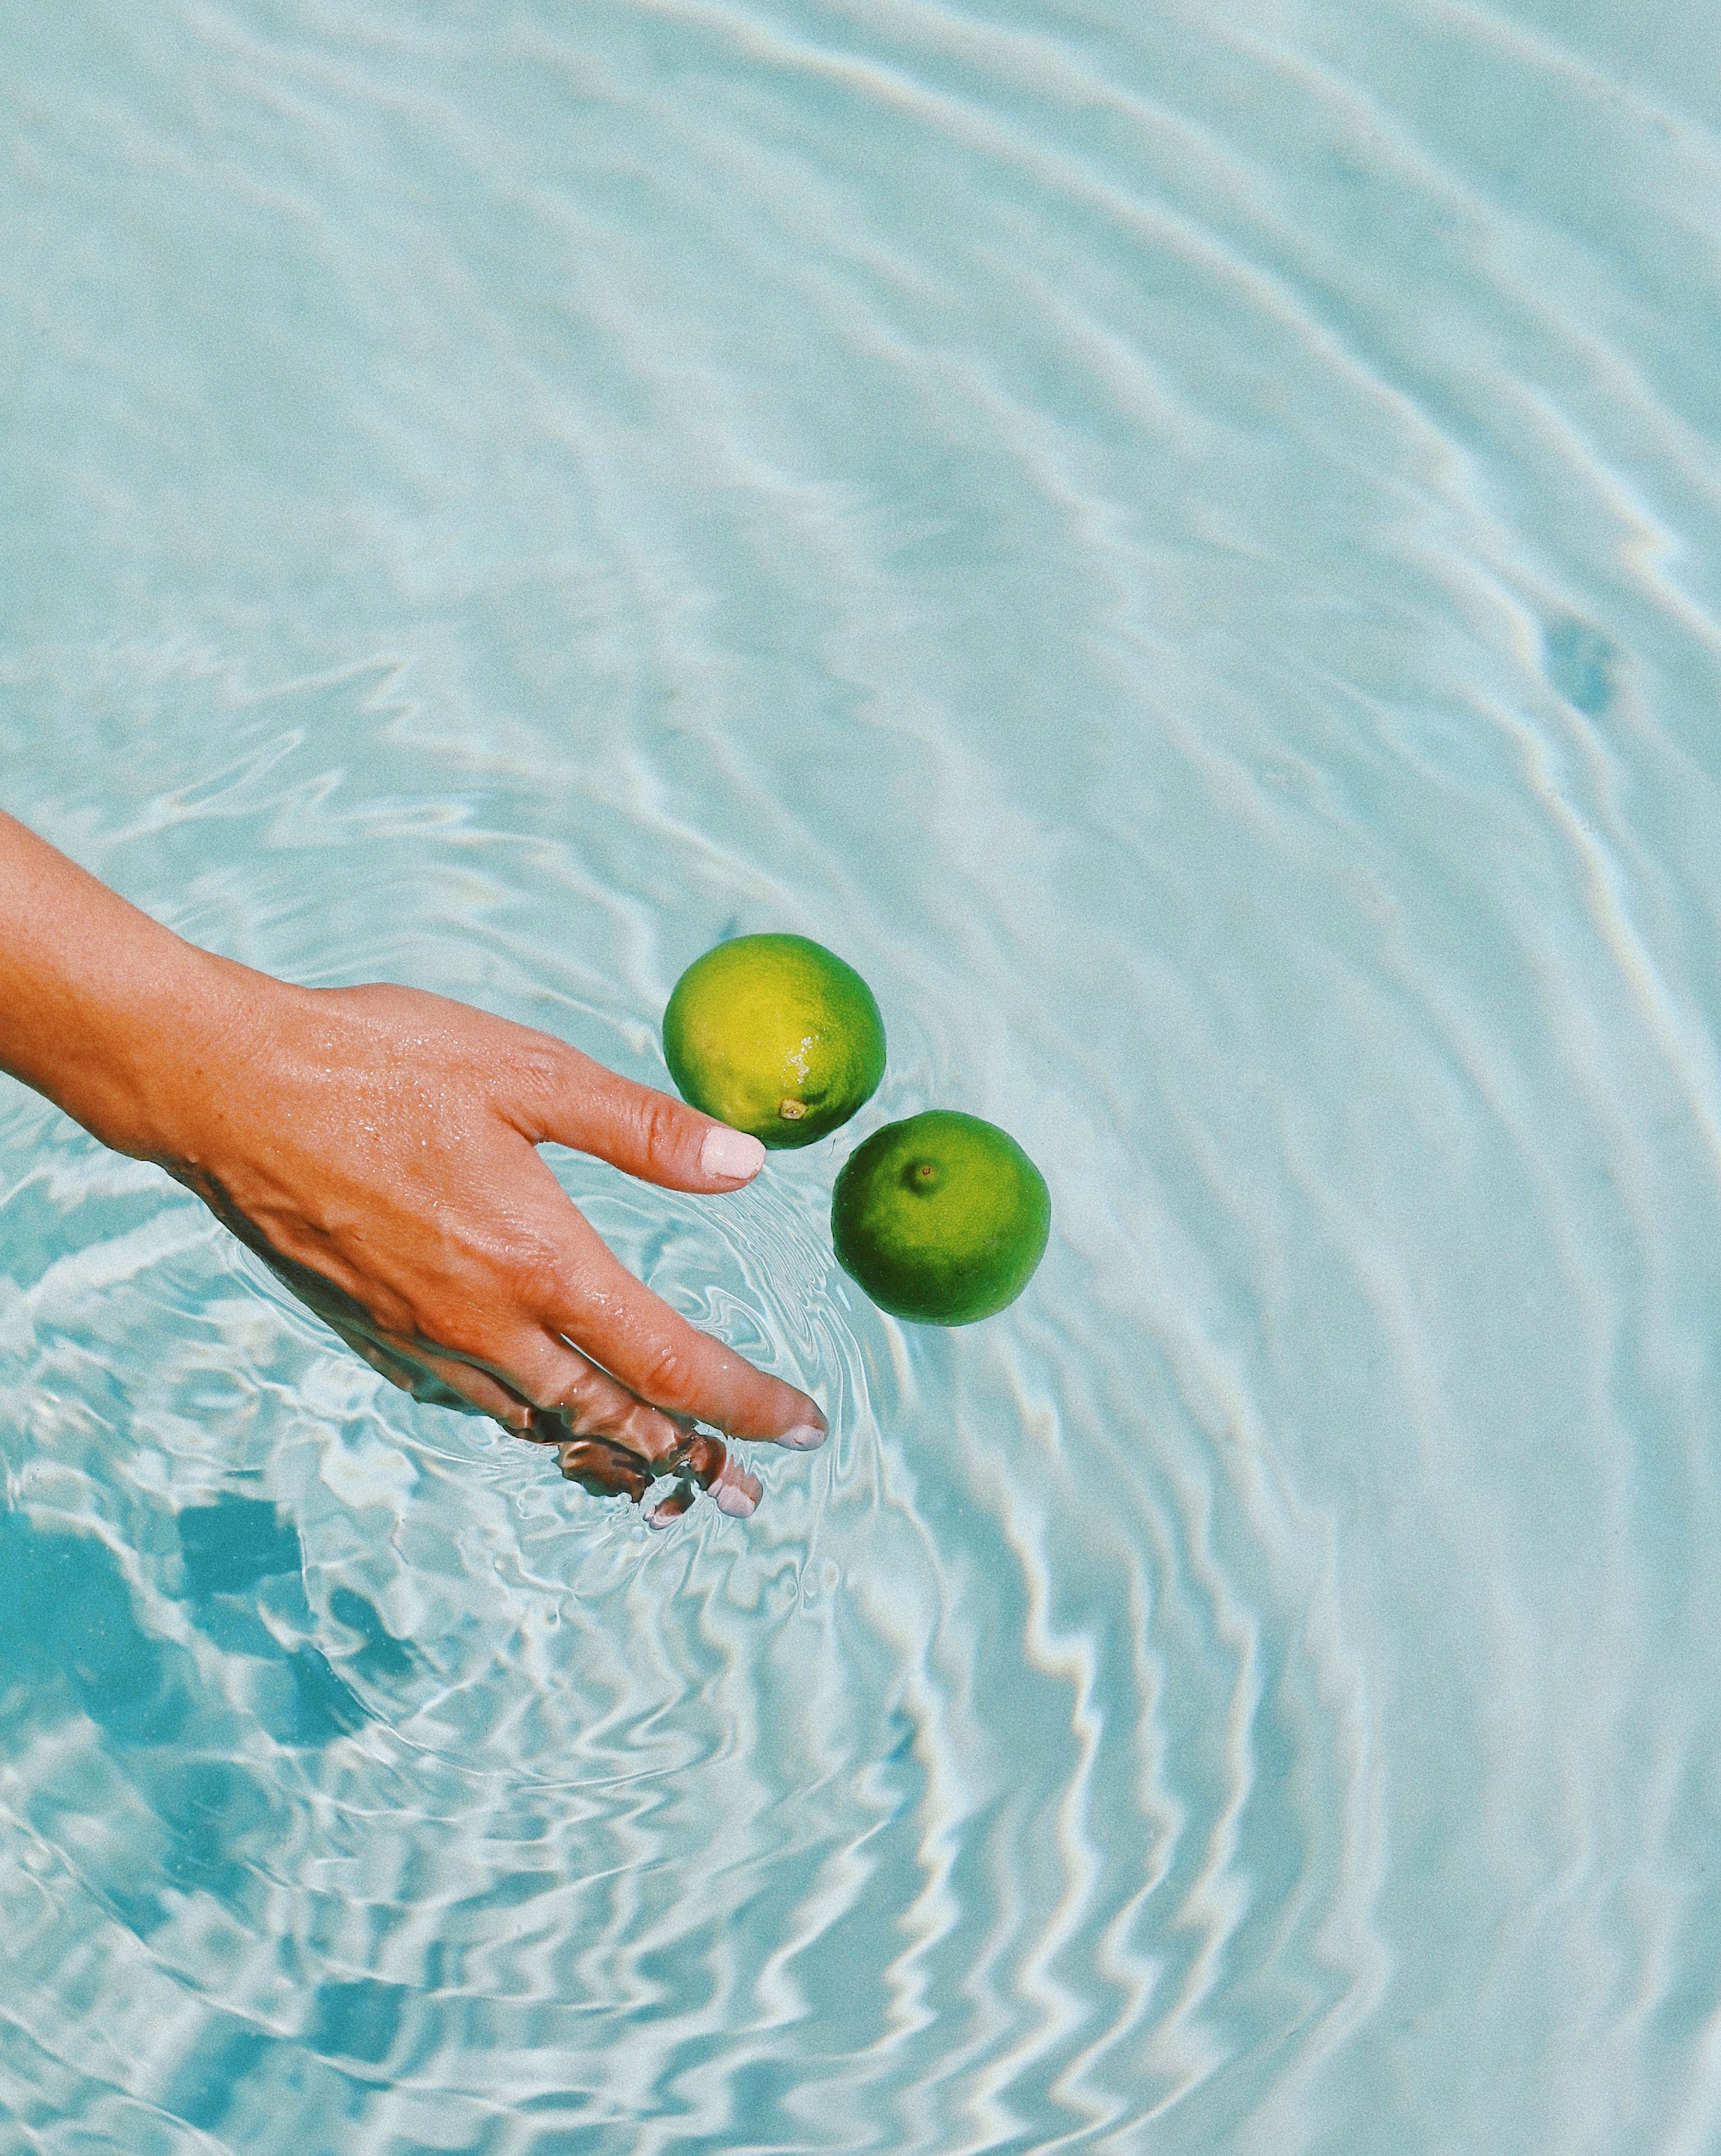 101895 download wallpaper Water, Lime, Hand, Miscellanea, Miscellaneous, Spray, Fruit, Citrus screensavers and pictures for free